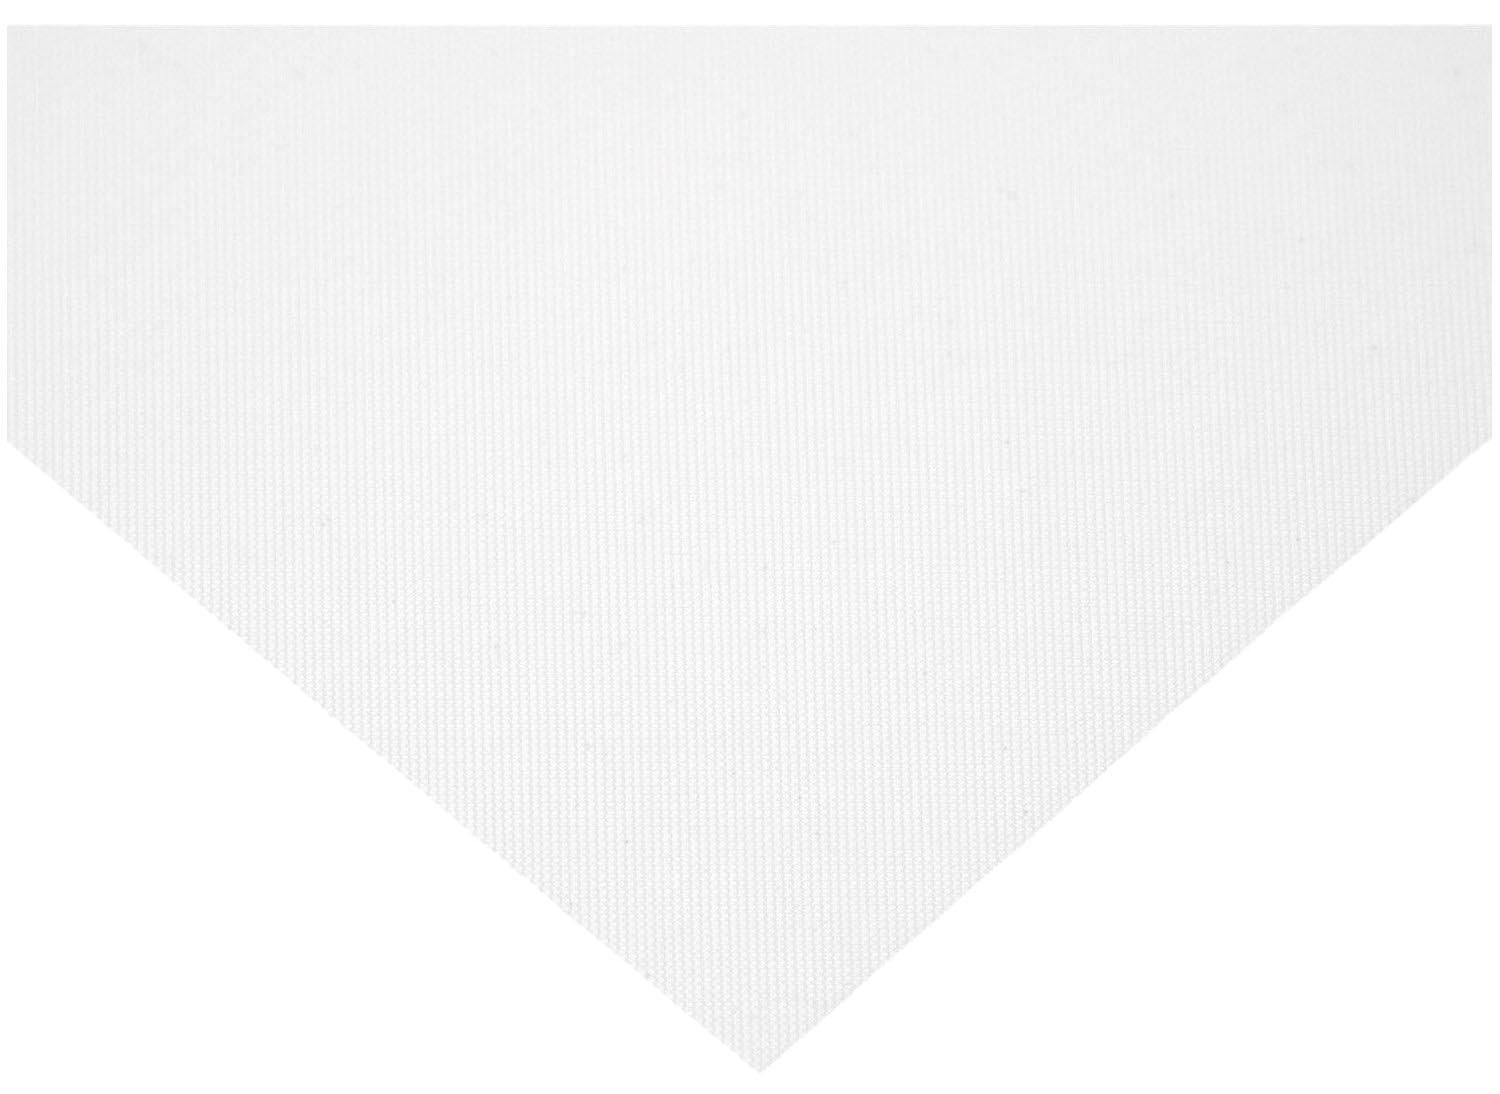 Nylon 6 Woven Mesh Sheet, Opaque Off-White, 12